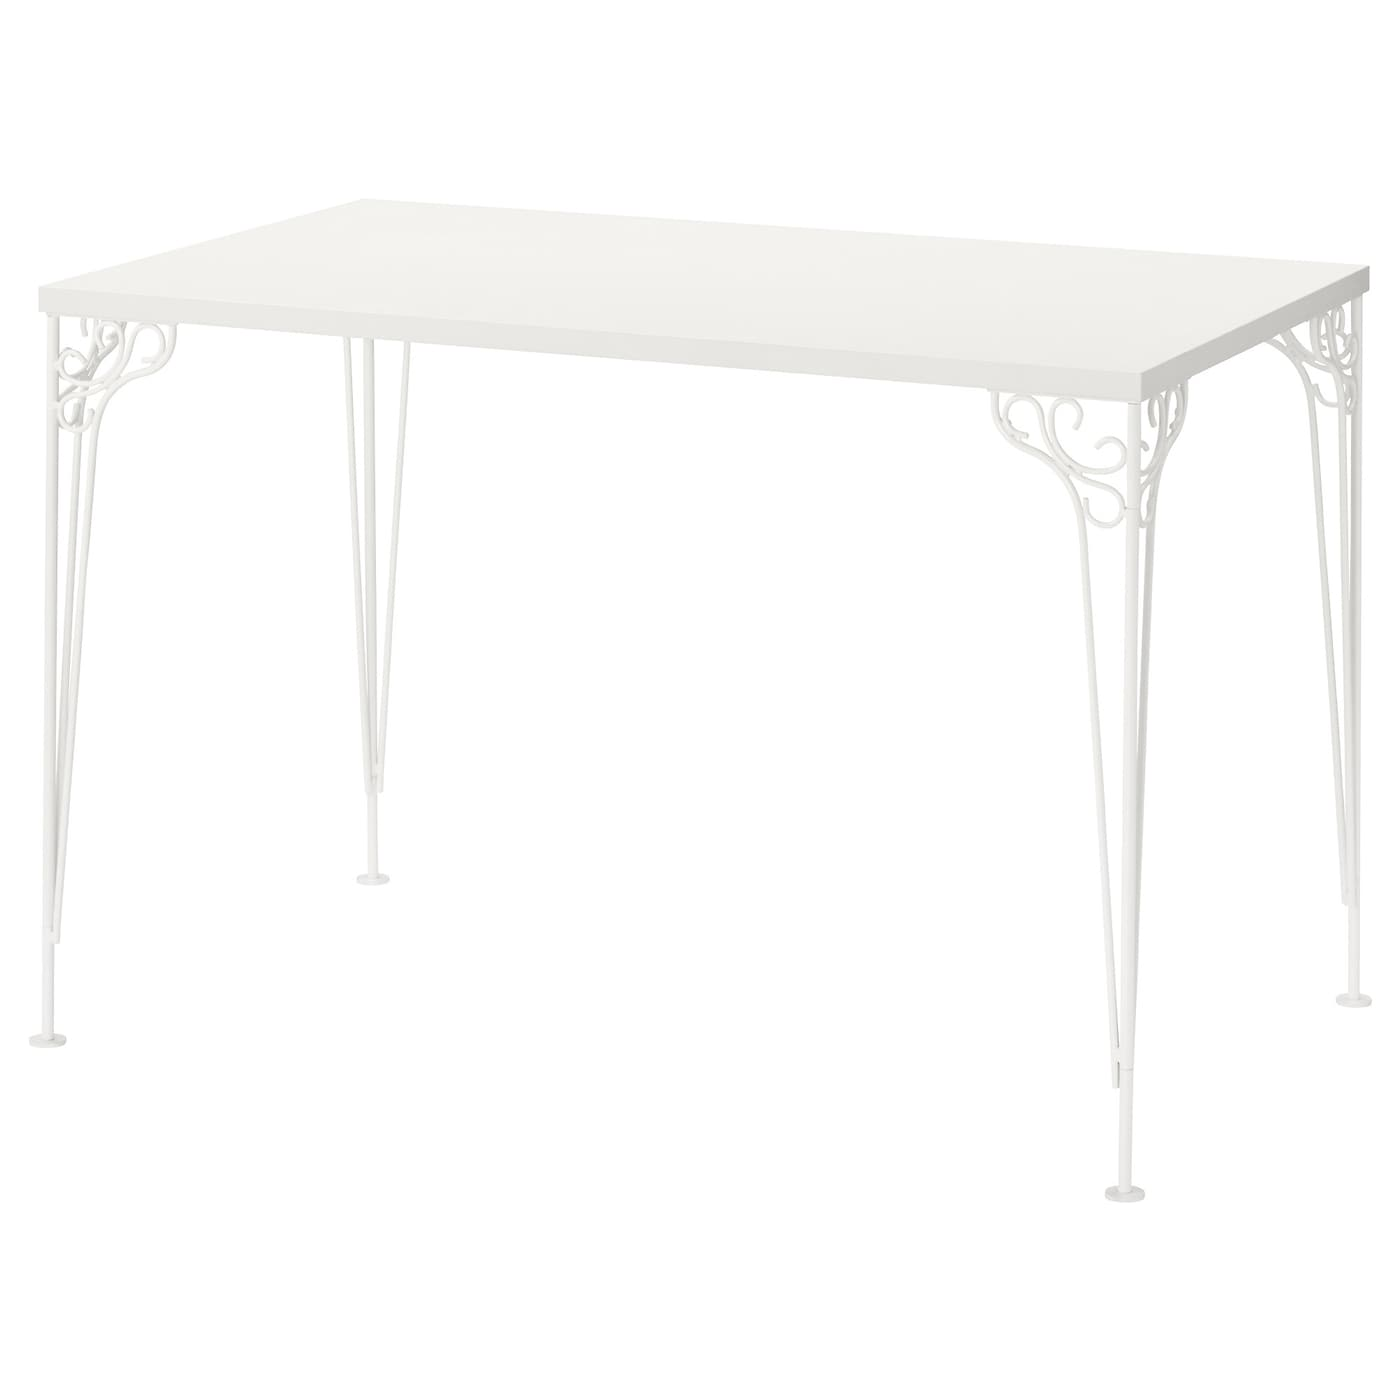 IKEA FALKHÖJDEN desk The melamine surface is durable, stain resistant and easy to keep clean.